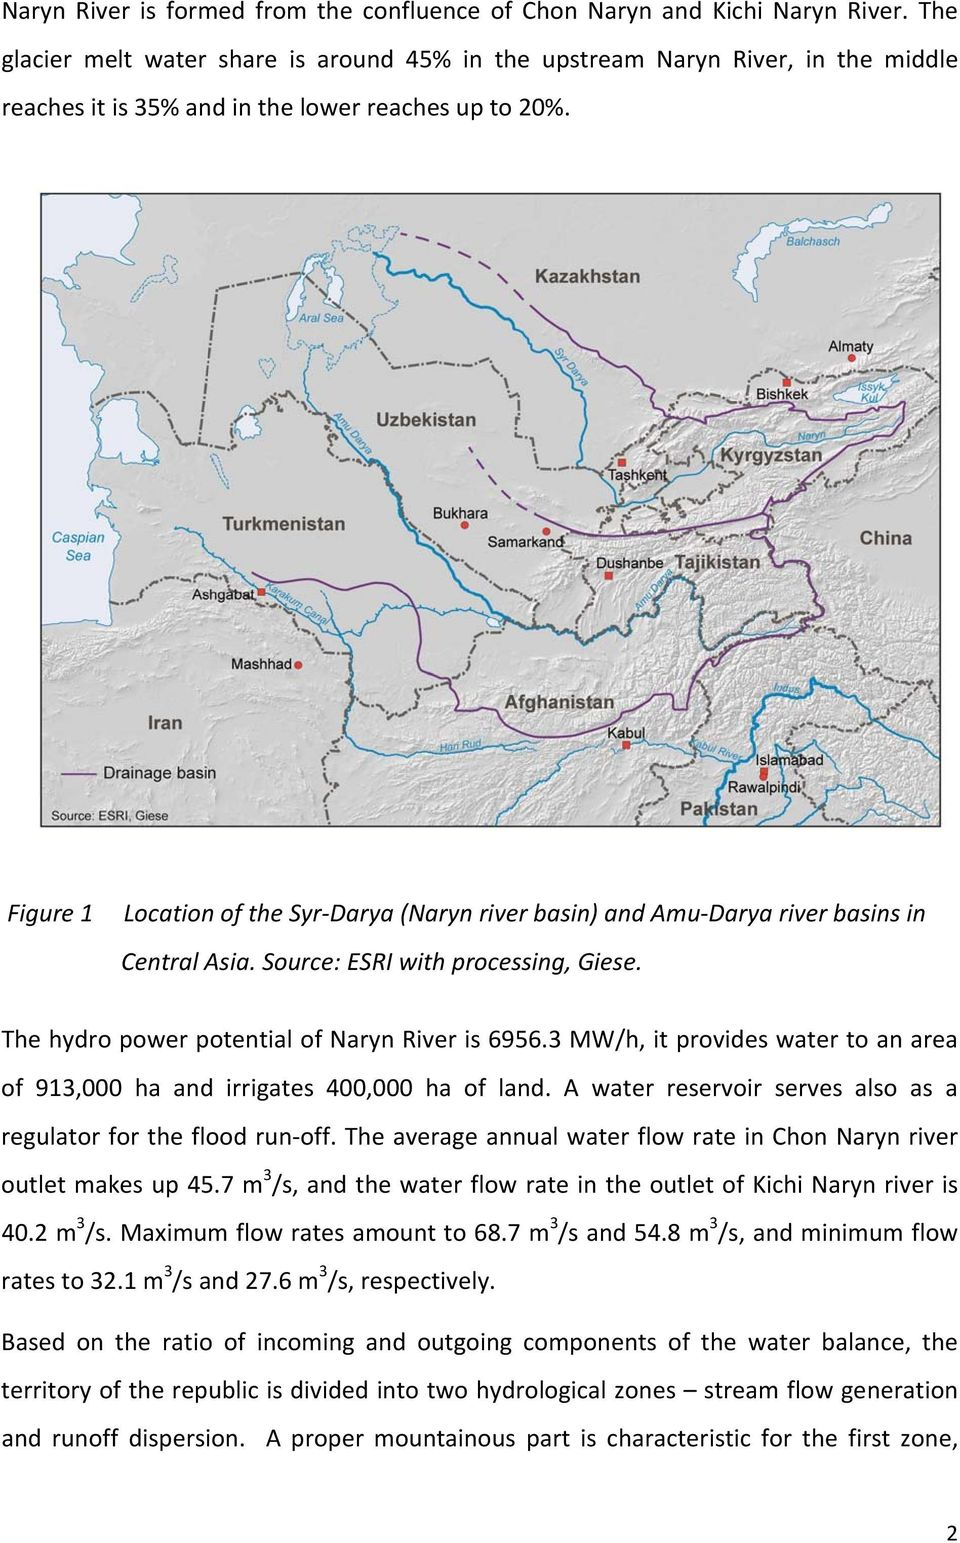 Figure 1 Location of the Syr Darya (Naryn river basin) and Amu Darya river basins in Central Asia. Source: ESRI with processing, Giese. The hydro power potential of Naryn River is 6956.